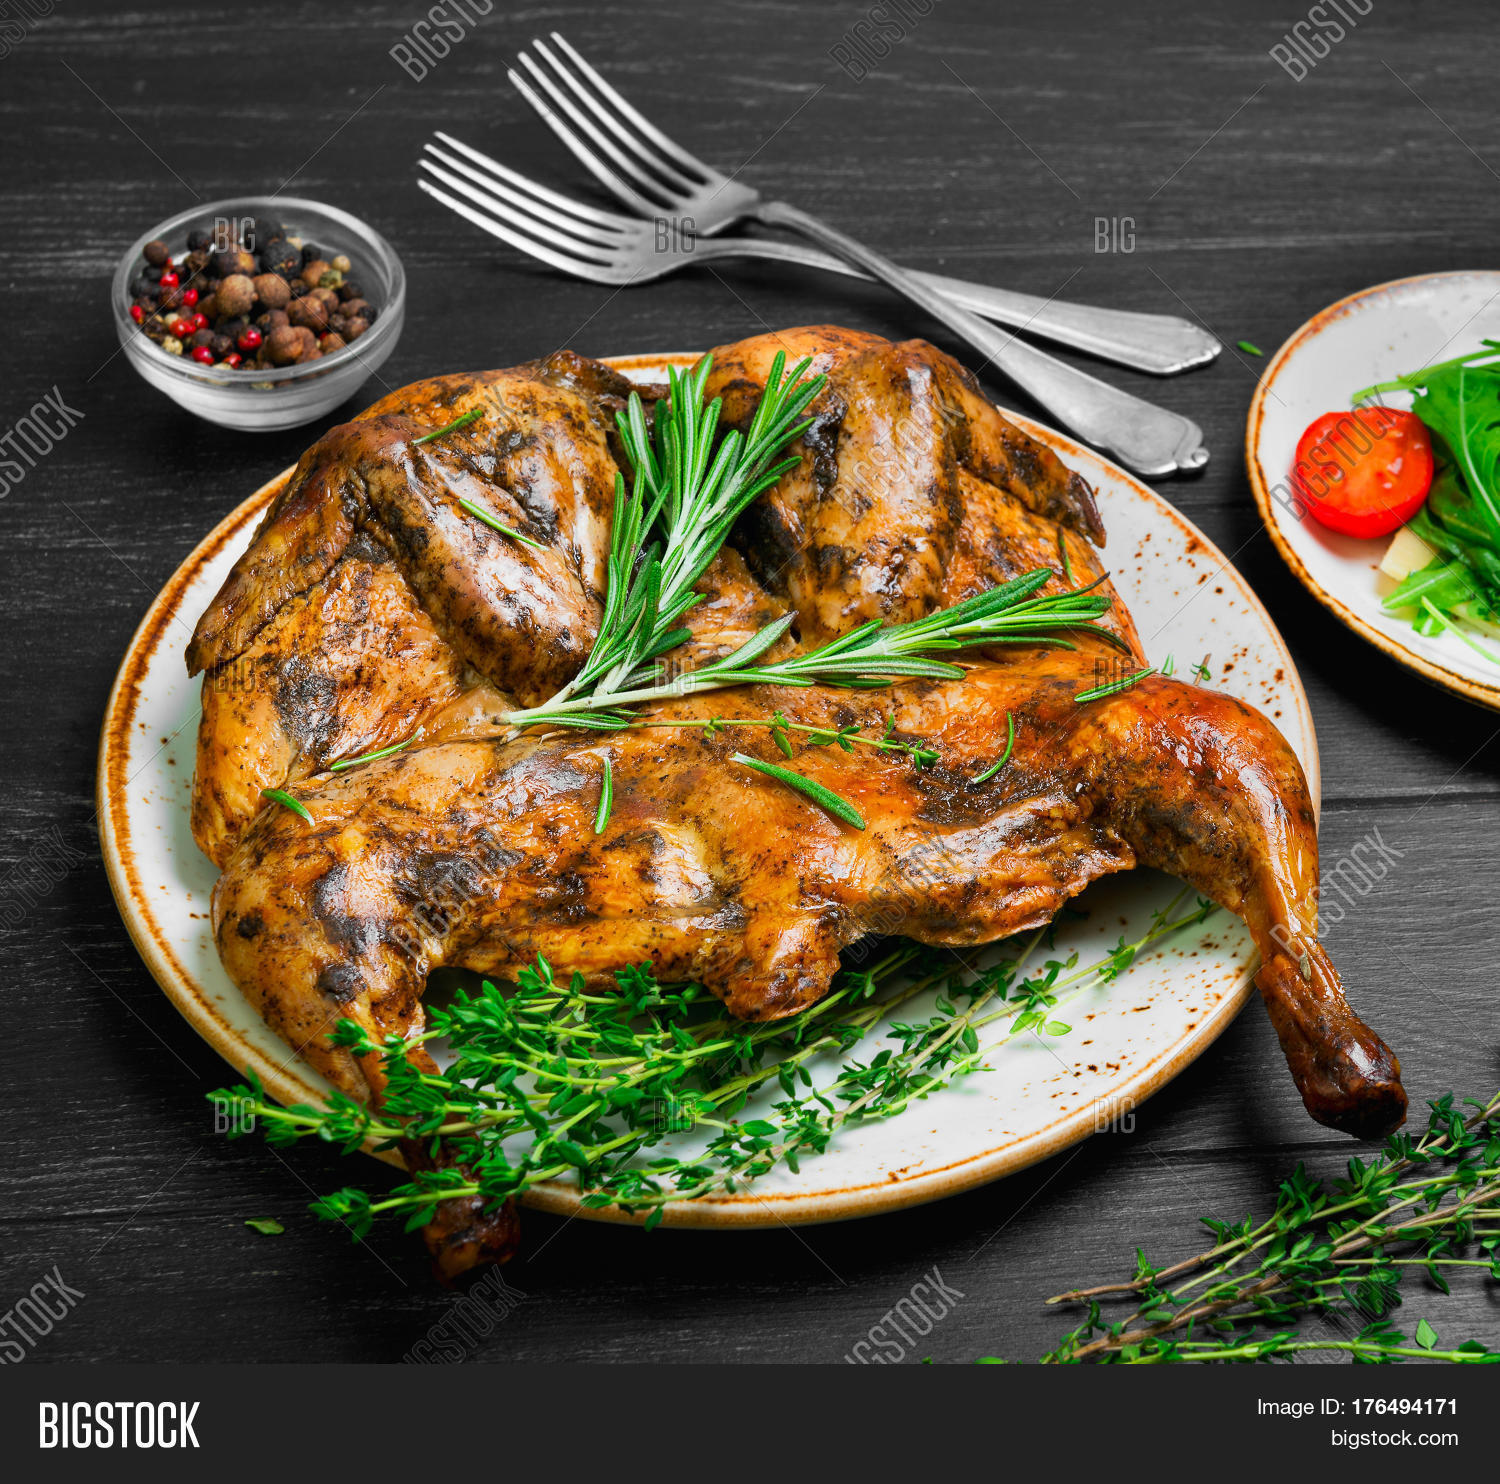 Bild und Foto: Georgian Cuisine. Grilled Fried | Bigstock